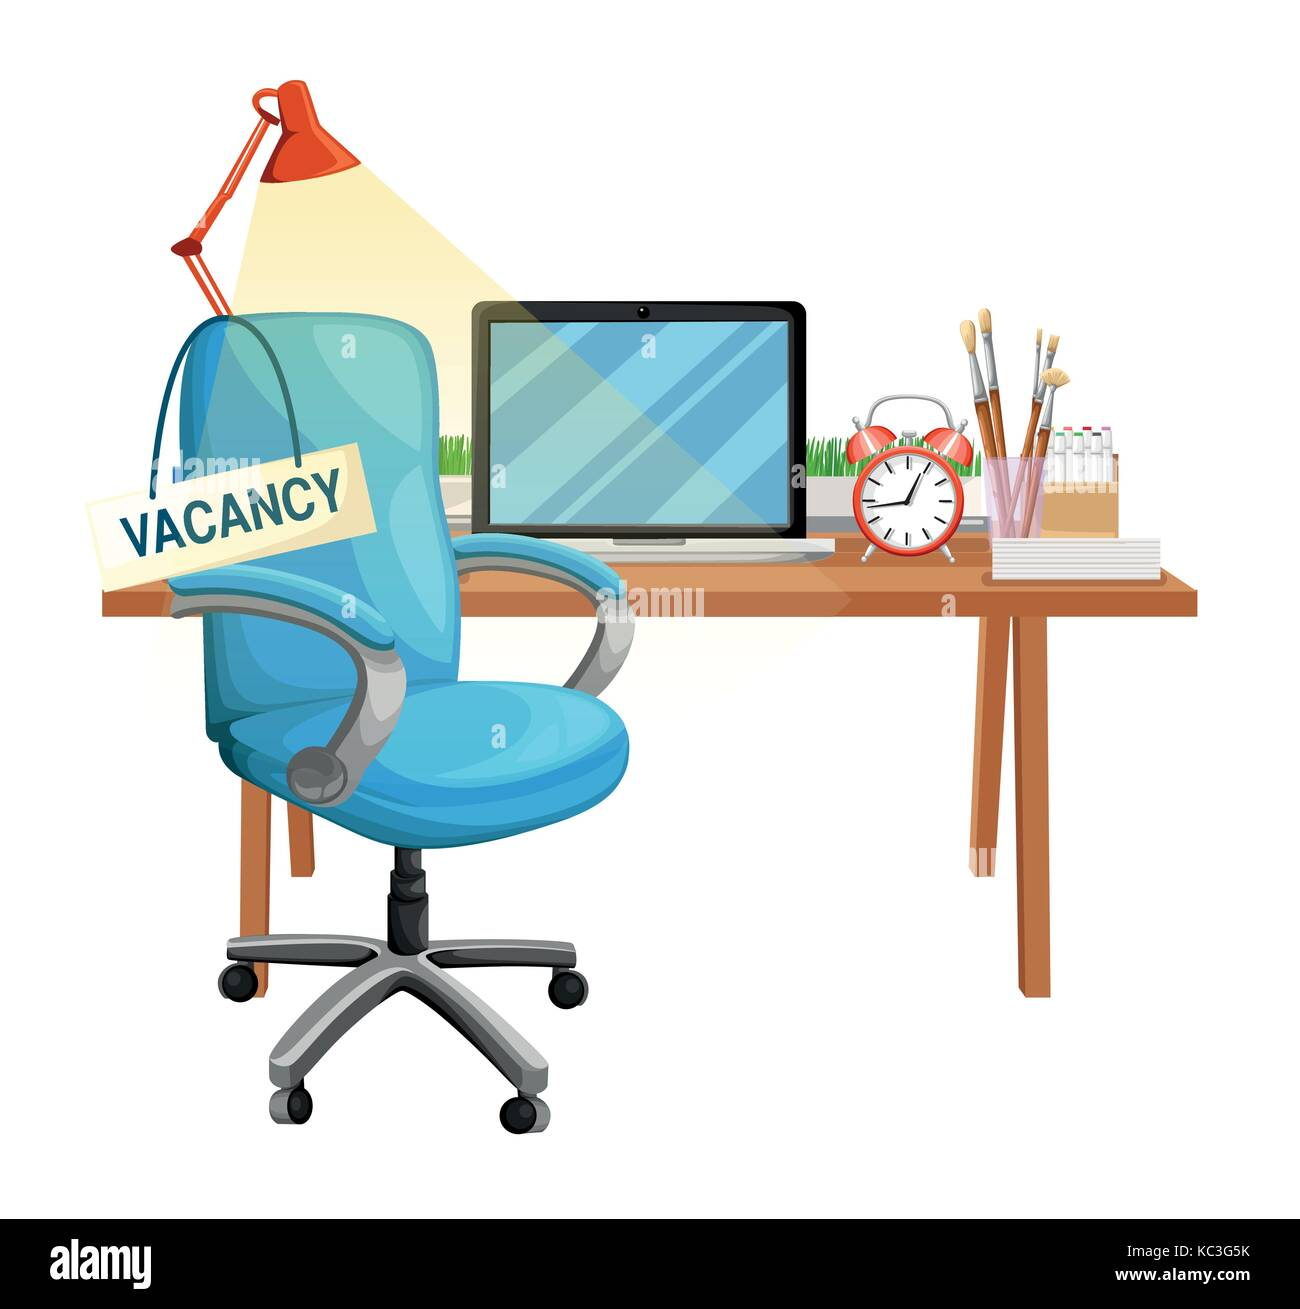 office chair illustration swivel mustard yellow composition with and a sign vacant business hiring recruiting concept vector web site page mobile app design elem